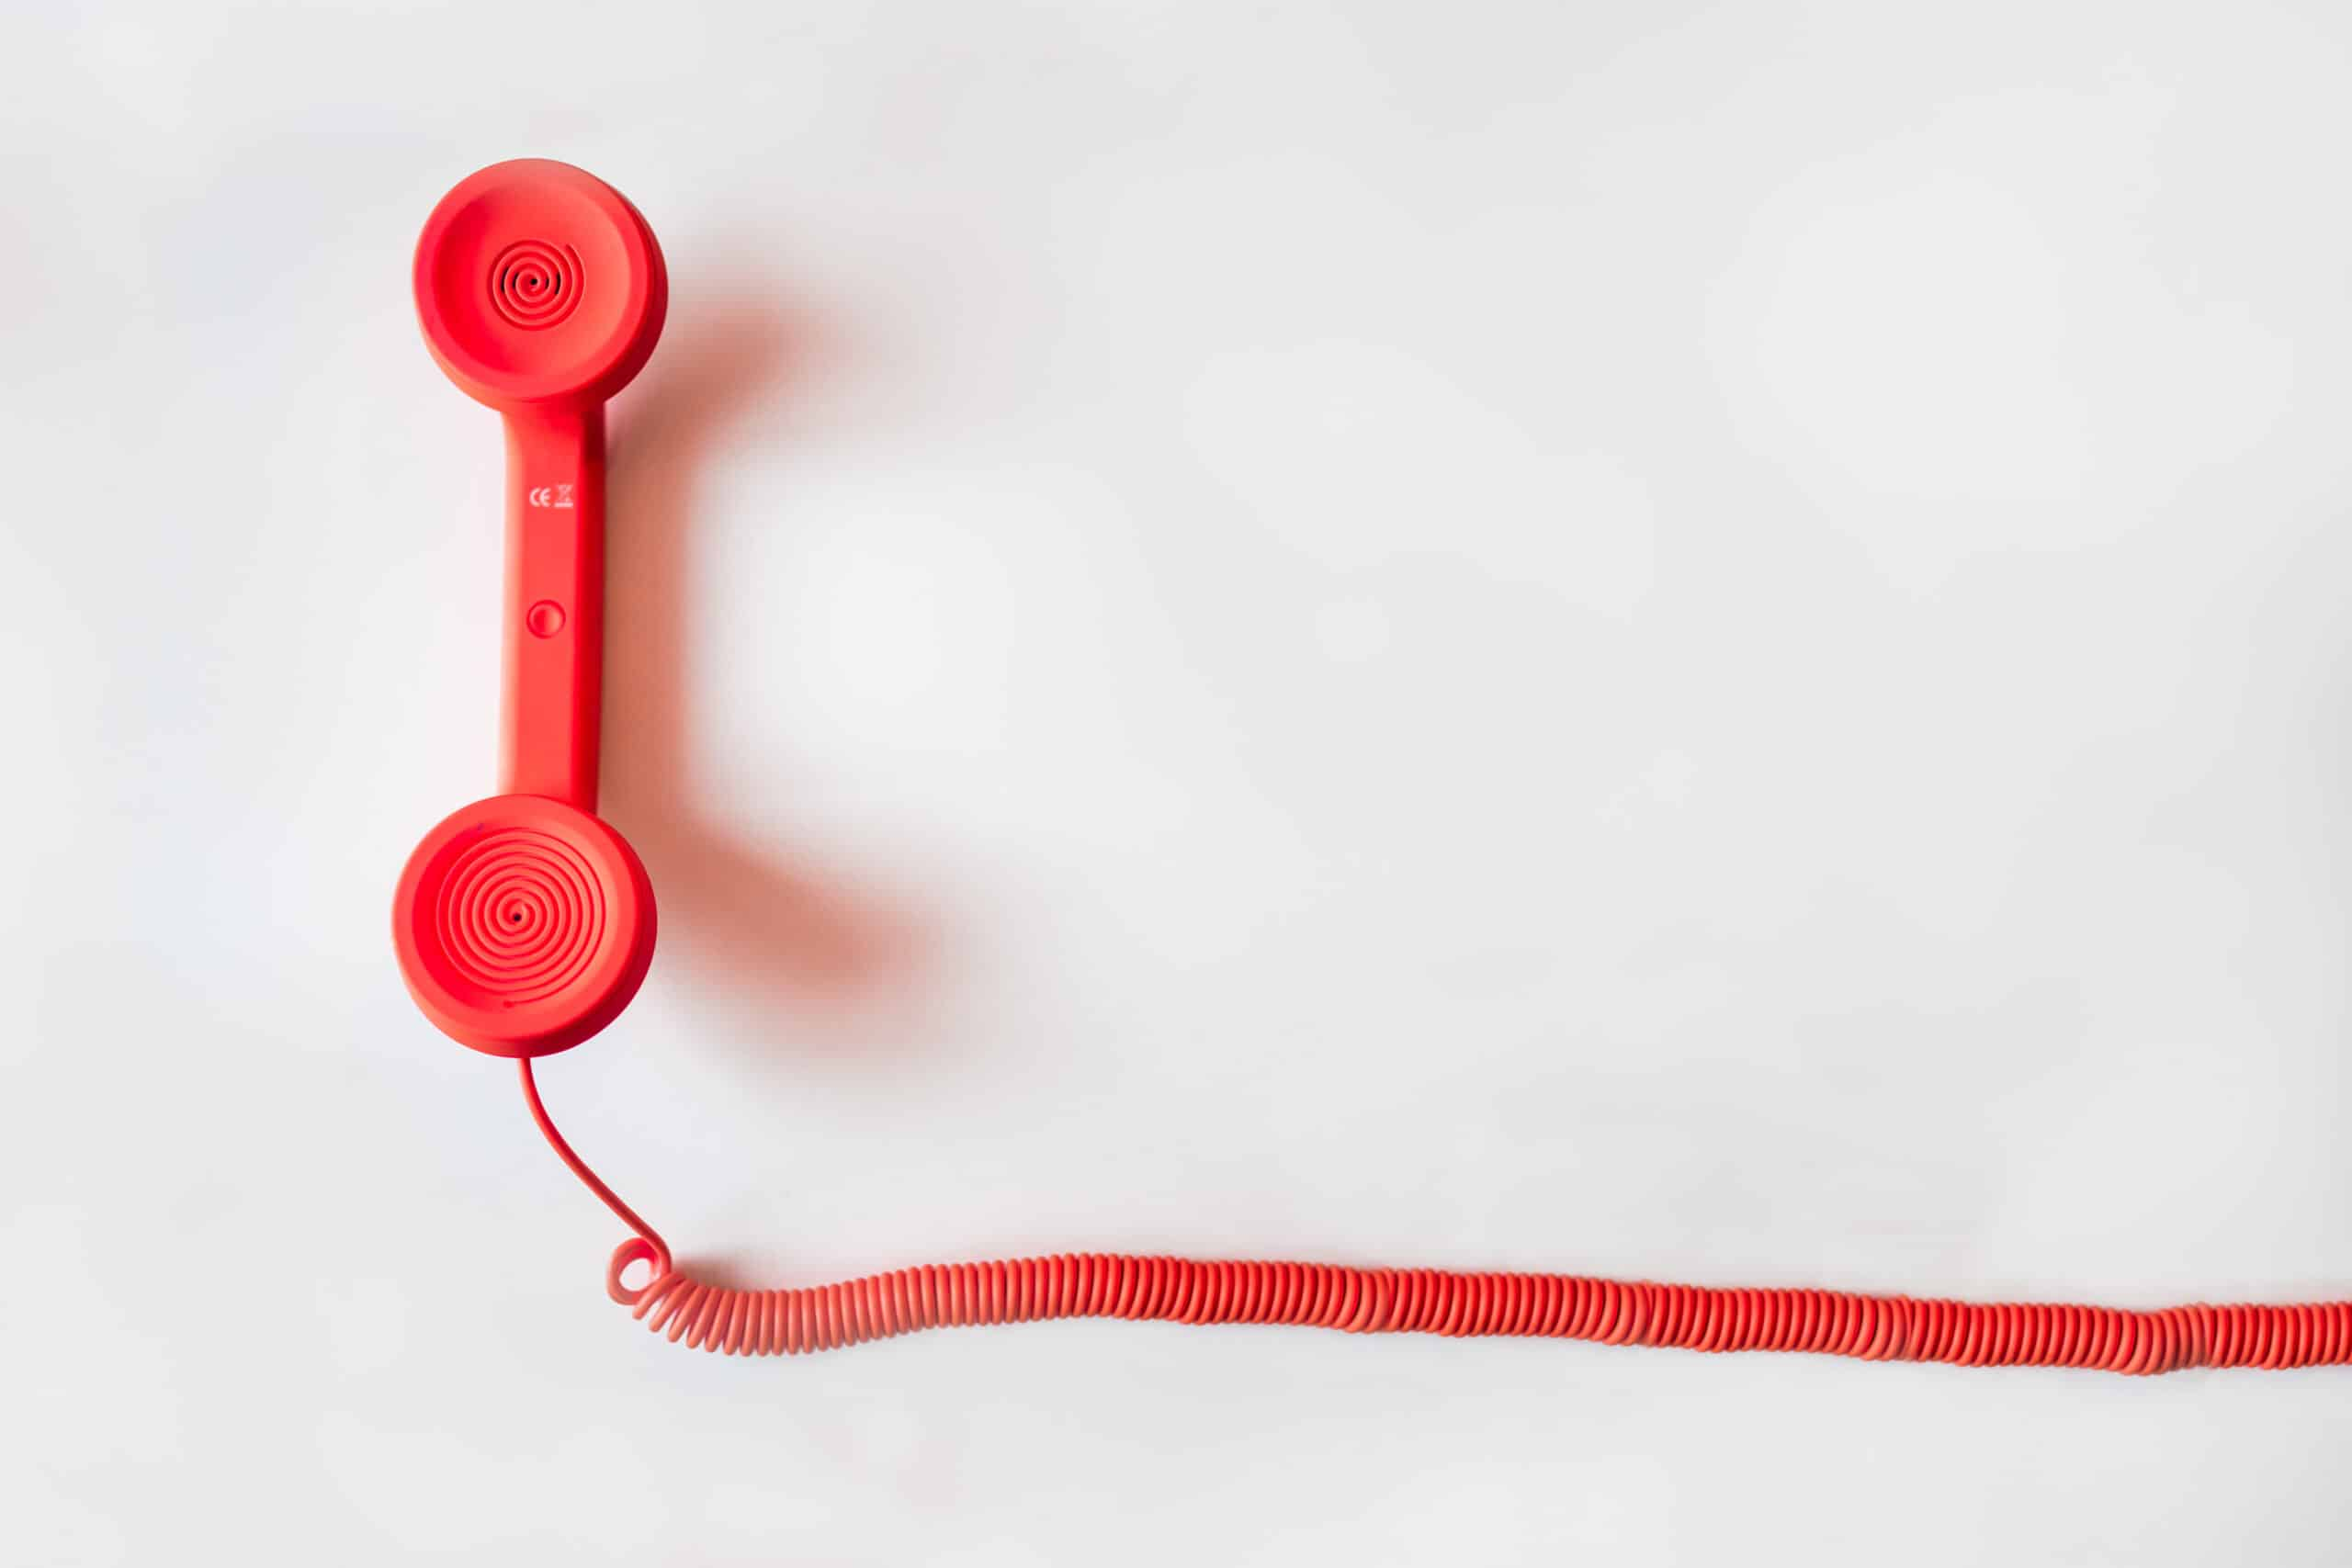 IVR Voiceovers can help your business